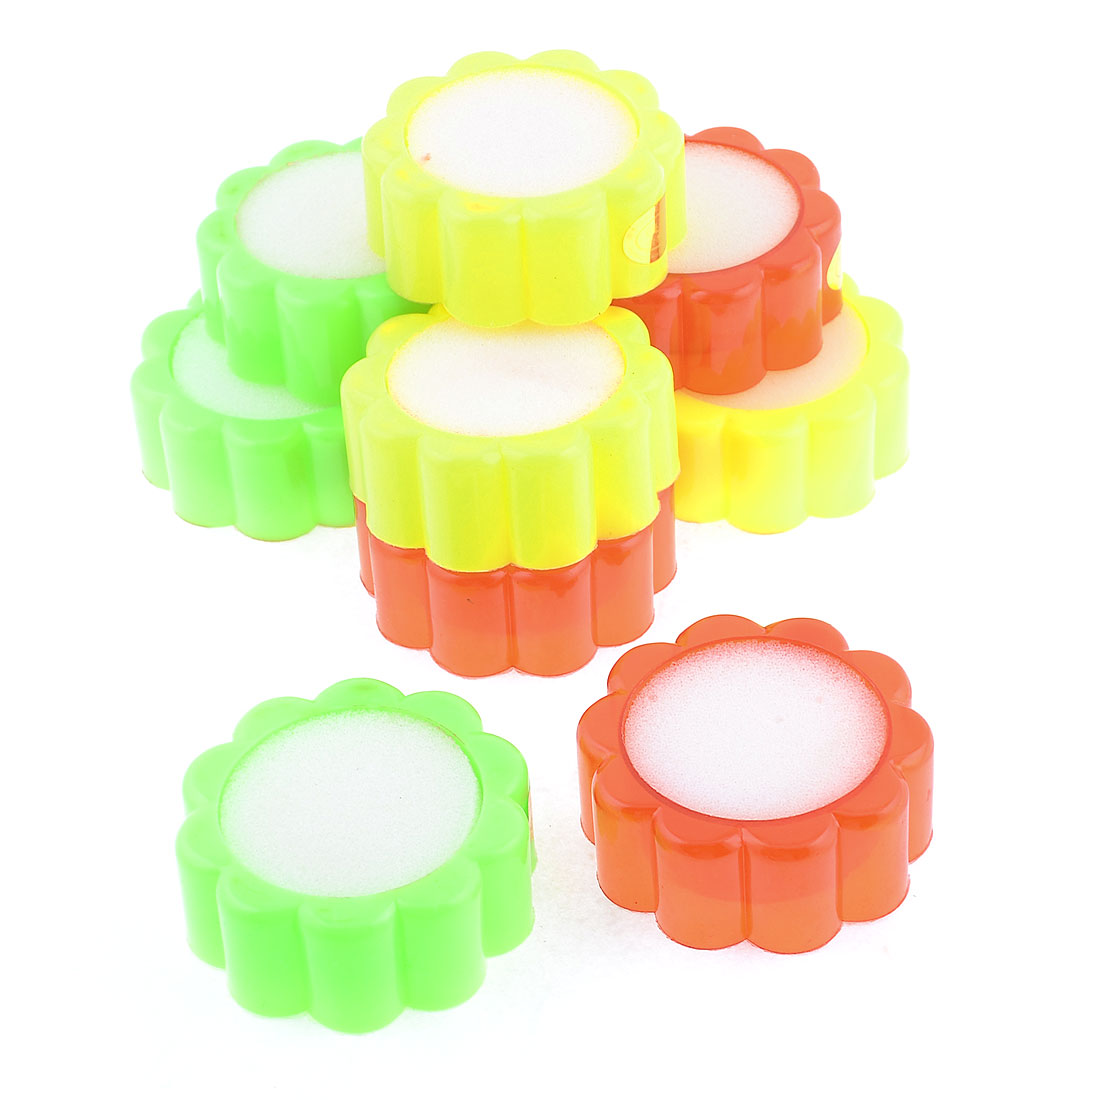 10 Pcs Colored Plastic Floral Shaped Case White Sponge Finger Wet for Cashie